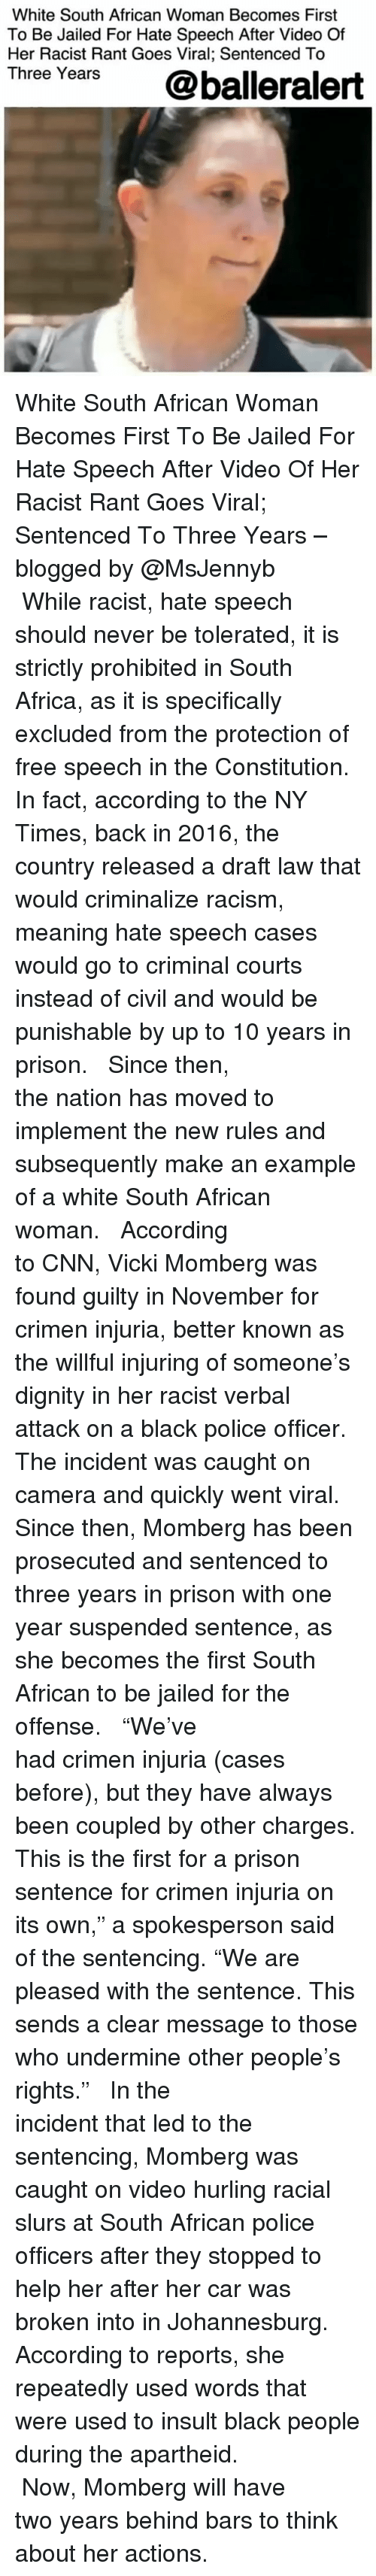 """Africa, cnn.com, and Memes: White South African Woman Becomes First  To Be Jailed For Hate Speech After Video Of  Her Racist Rant Goes Viral; Sentenced To  Three Years  @balleralert White South African Woman Becomes First To Be Jailed For Hate Speech After Video Of Her Racist Rant Goes Viral; Sentenced To Three Years – blogged by @MsJennyb ⠀⠀⠀⠀⠀⠀⠀⠀⠀ ⠀⠀⠀⠀⠀⠀⠀⠀⠀ While racist, hate speech should never be tolerated, it is strictly prohibited in South Africa, as it is specifically excluded from the protection of free speech in the Constitution. In fact, according to the NY Times, back in 2016, the country released a draft law that would criminalize racism, meaning hate speech cases would go to criminal courts instead of civil and would be punishable by up to 10 years in prison. ⠀⠀⠀⠀⠀⠀⠀⠀⠀ ⠀⠀⠀⠀⠀⠀⠀⠀⠀ Since then, the nation has moved to implement the new rules and subsequently make an example of a white South African woman. ⠀⠀⠀⠀⠀⠀⠀⠀⠀ ⠀⠀⠀⠀⠀⠀⠀⠀⠀ According to CNN, Vicki Momberg was found guilty in November for crimen injuria, better known as the willful injuring of someone's dignity in her racist verbal attack on a black police officer. The incident was caught on camera and quickly went viral. Since then, Momberg has been prosecuted and sentenced to three years in prison with one year suspended sentence, as she becomes the first South African to be jailed for the offense. ⠀⠀⠀⠀⠀⠀⠀⠀⠀ ⠀⠀⠀⠀⠀⠀⠀⠀⠀ """"We've had crimen injuria (cases before), but they have always been coupled by other charges. This is the first for a prison sentence for crimen injuria on its own,"""" a spokesperson said of the sentencing. """"We are pleased with the sentence. This sends a clear message to those who undermine other people's rights."""" ⠀⠀⠀⠀⠀⠀⠀⠀⠀ ⠀⠀⠀⠀⠀⠀⠀⠀⠀ In the incident that led to the sentencing, Momberg was caught on video hurling racial slurs at South African police officers after they stopped to help her after her car was broken into in Johannesburg. According to reports, she repeatedly used words that were us"""